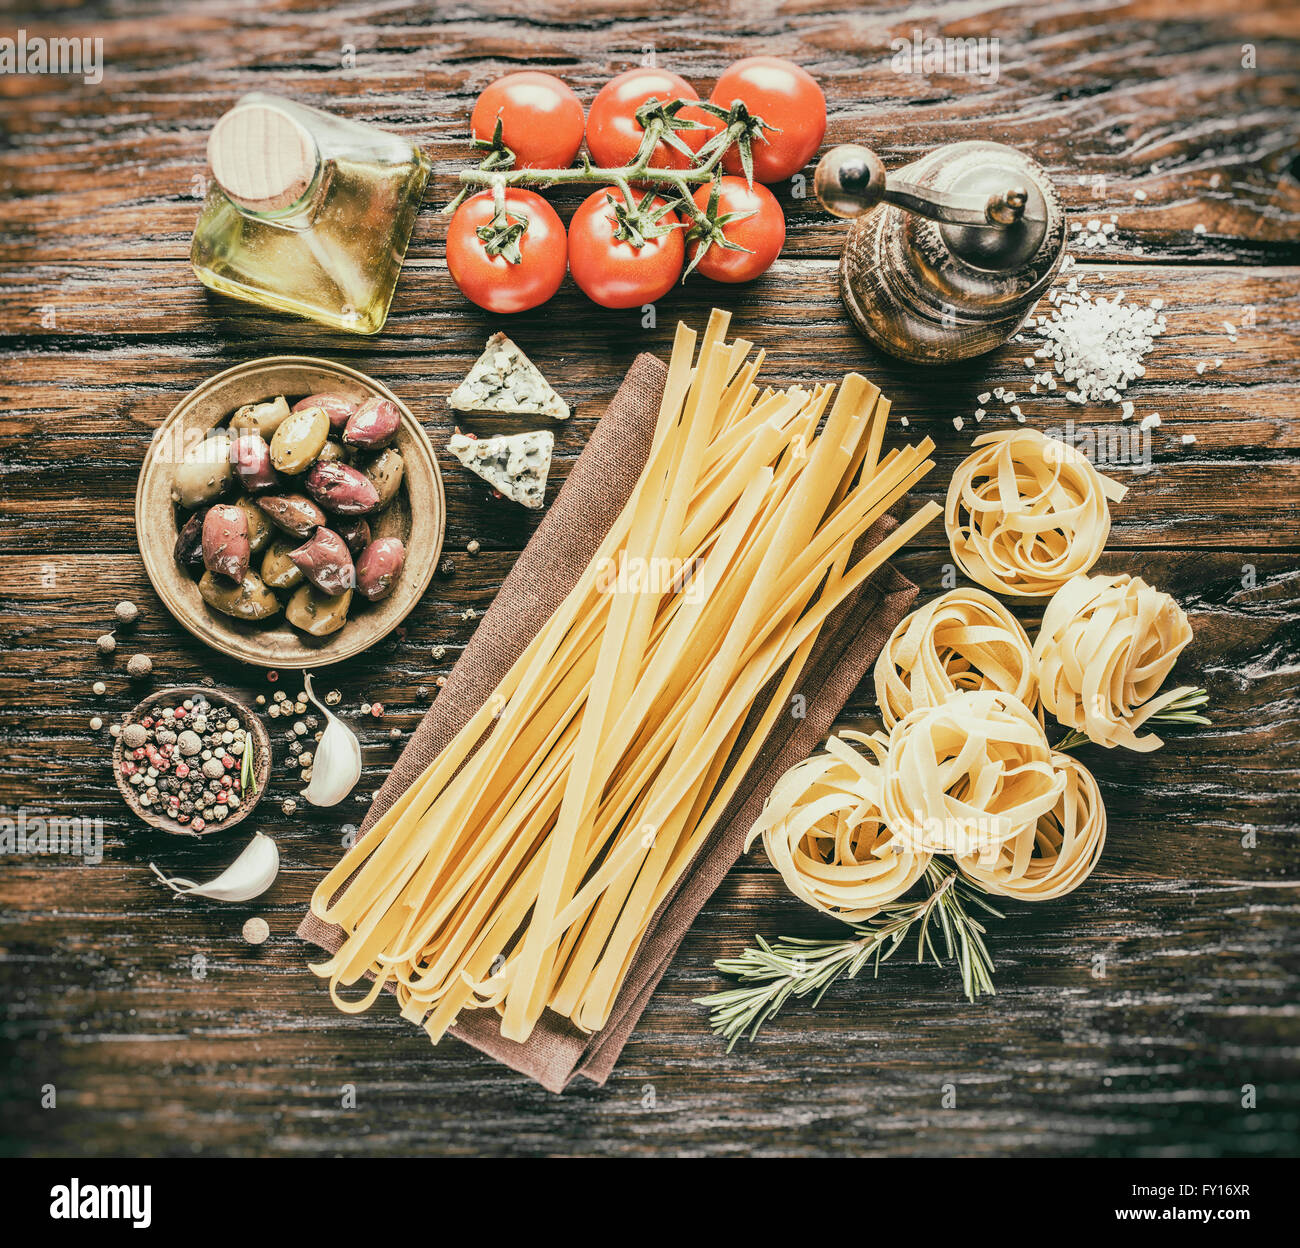 Pasta ingredients. Cherry-tomatoes, spaghetti pasta, rosemary and spices on the wooden table. Vintage style. - Stock Image